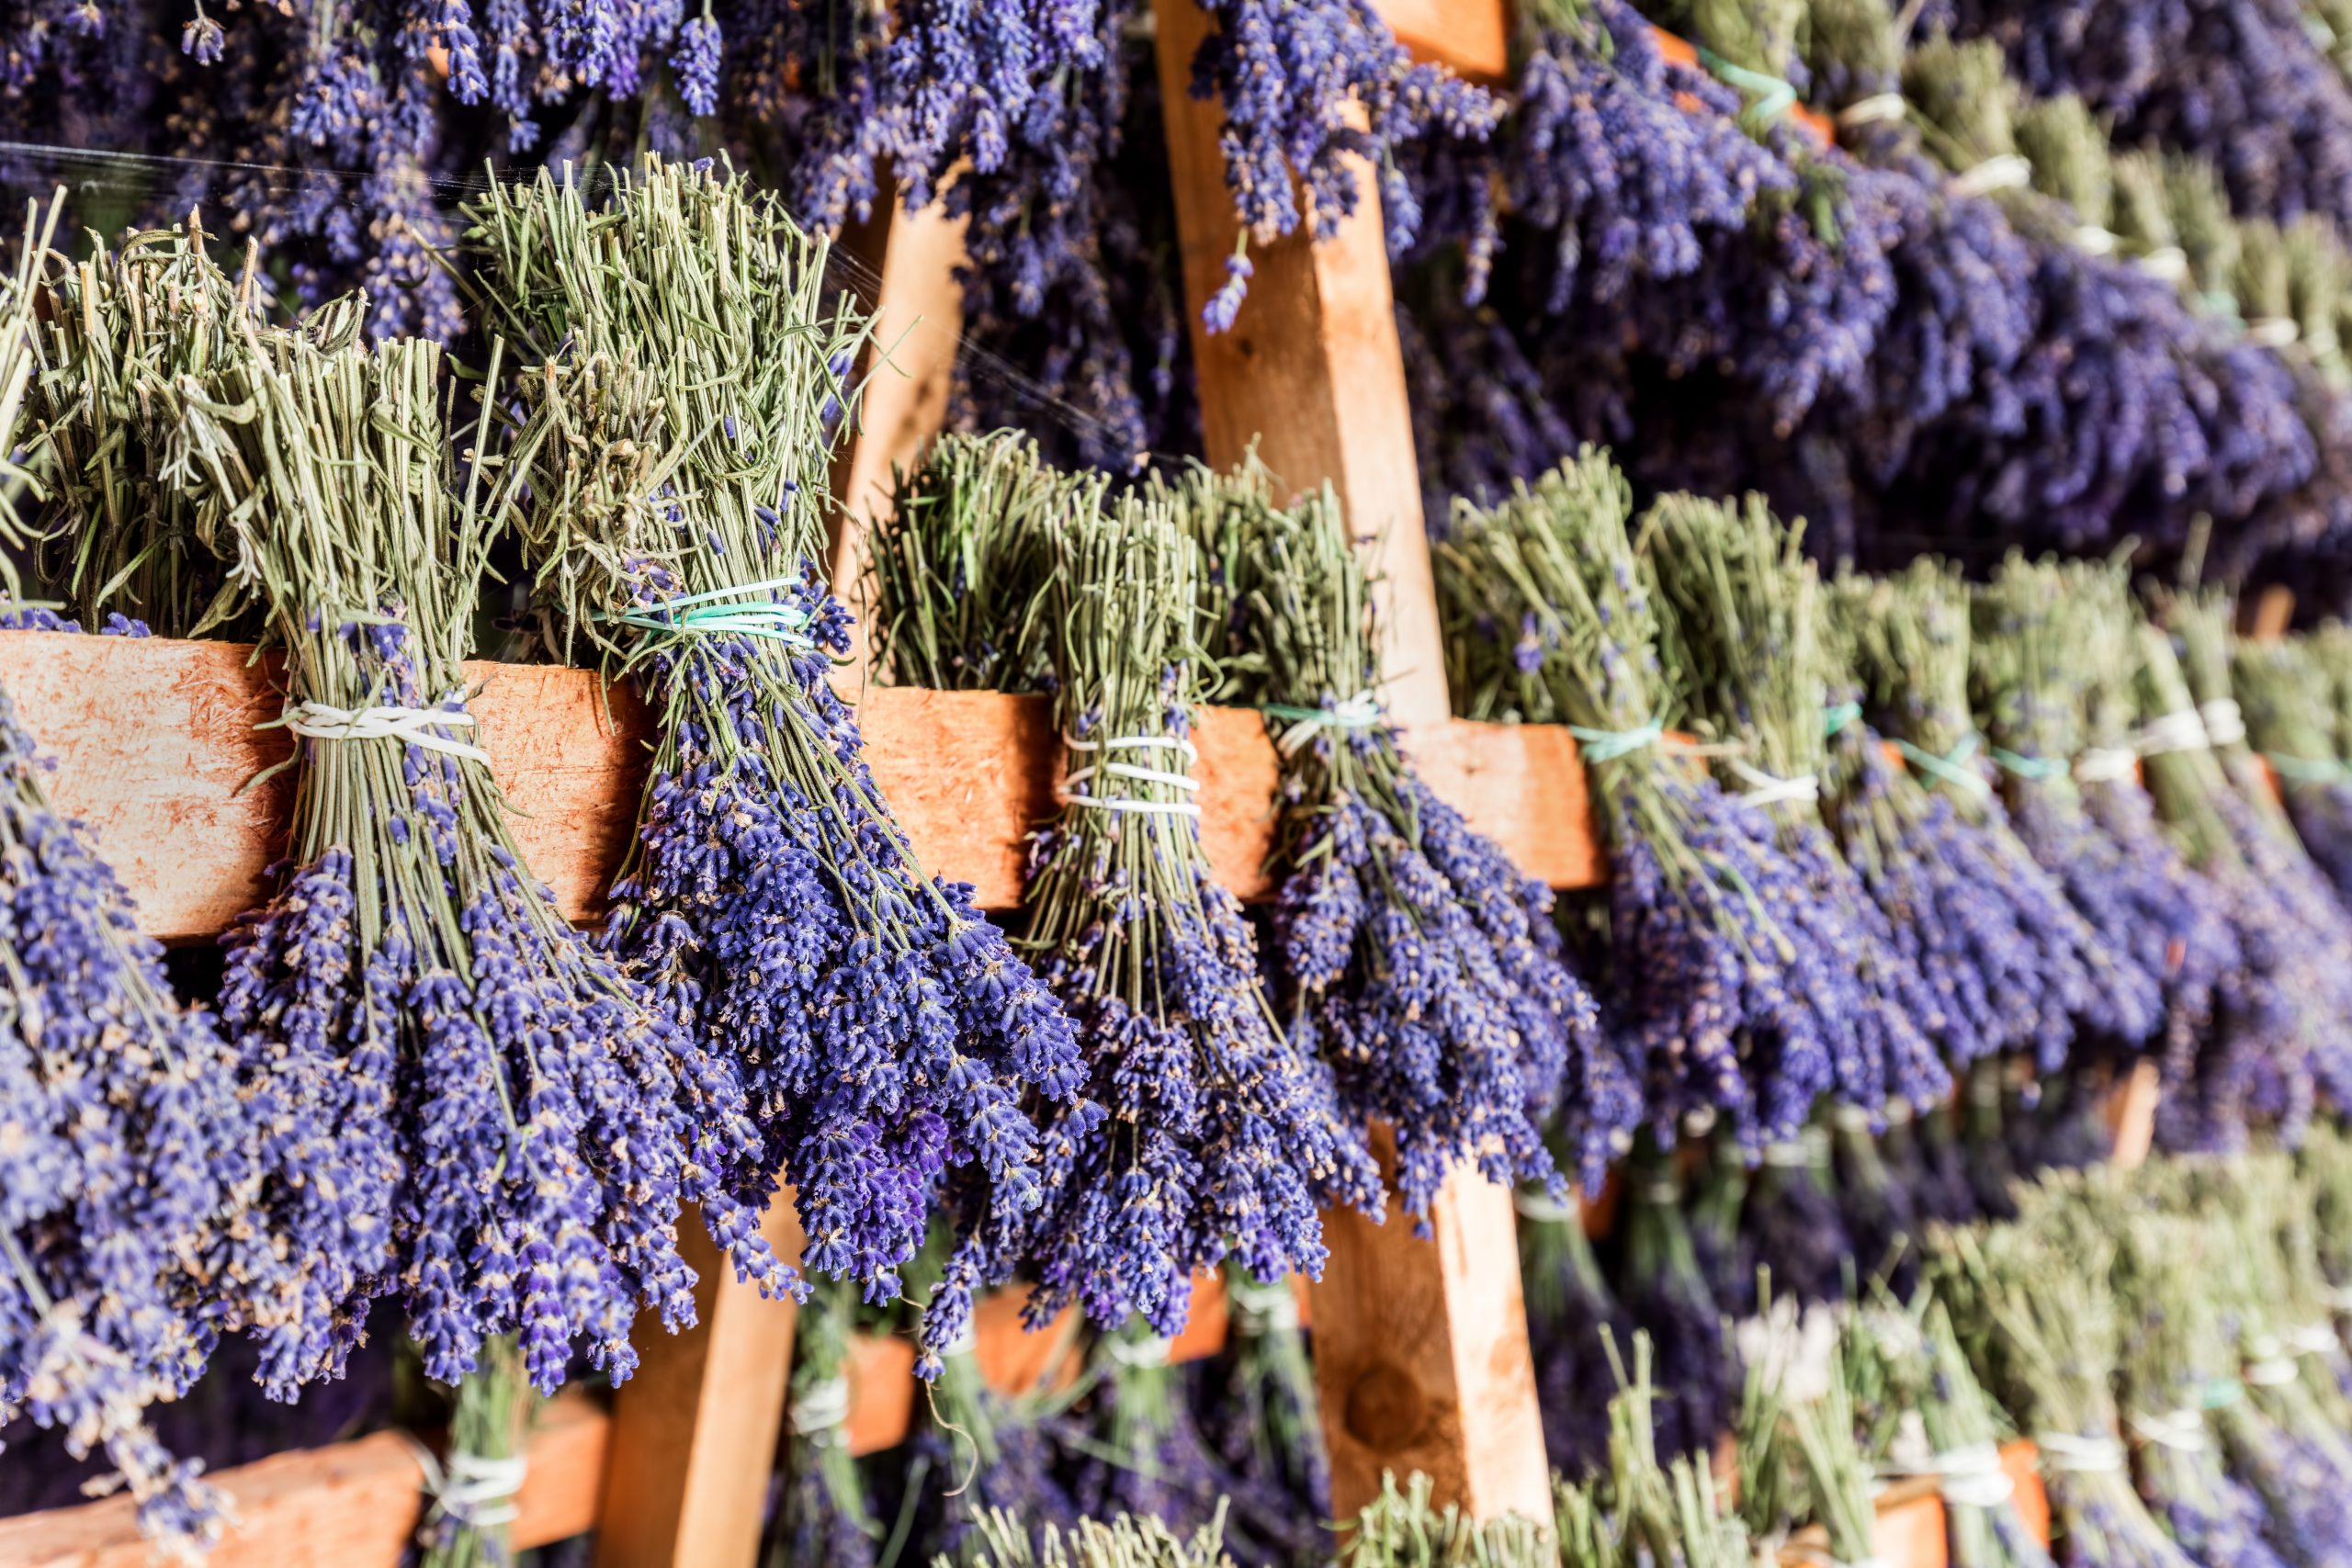 gorup of lavender satchels. lavender farms are one of the best things to do in blanco texas for sale at one of the lavender farms in texas